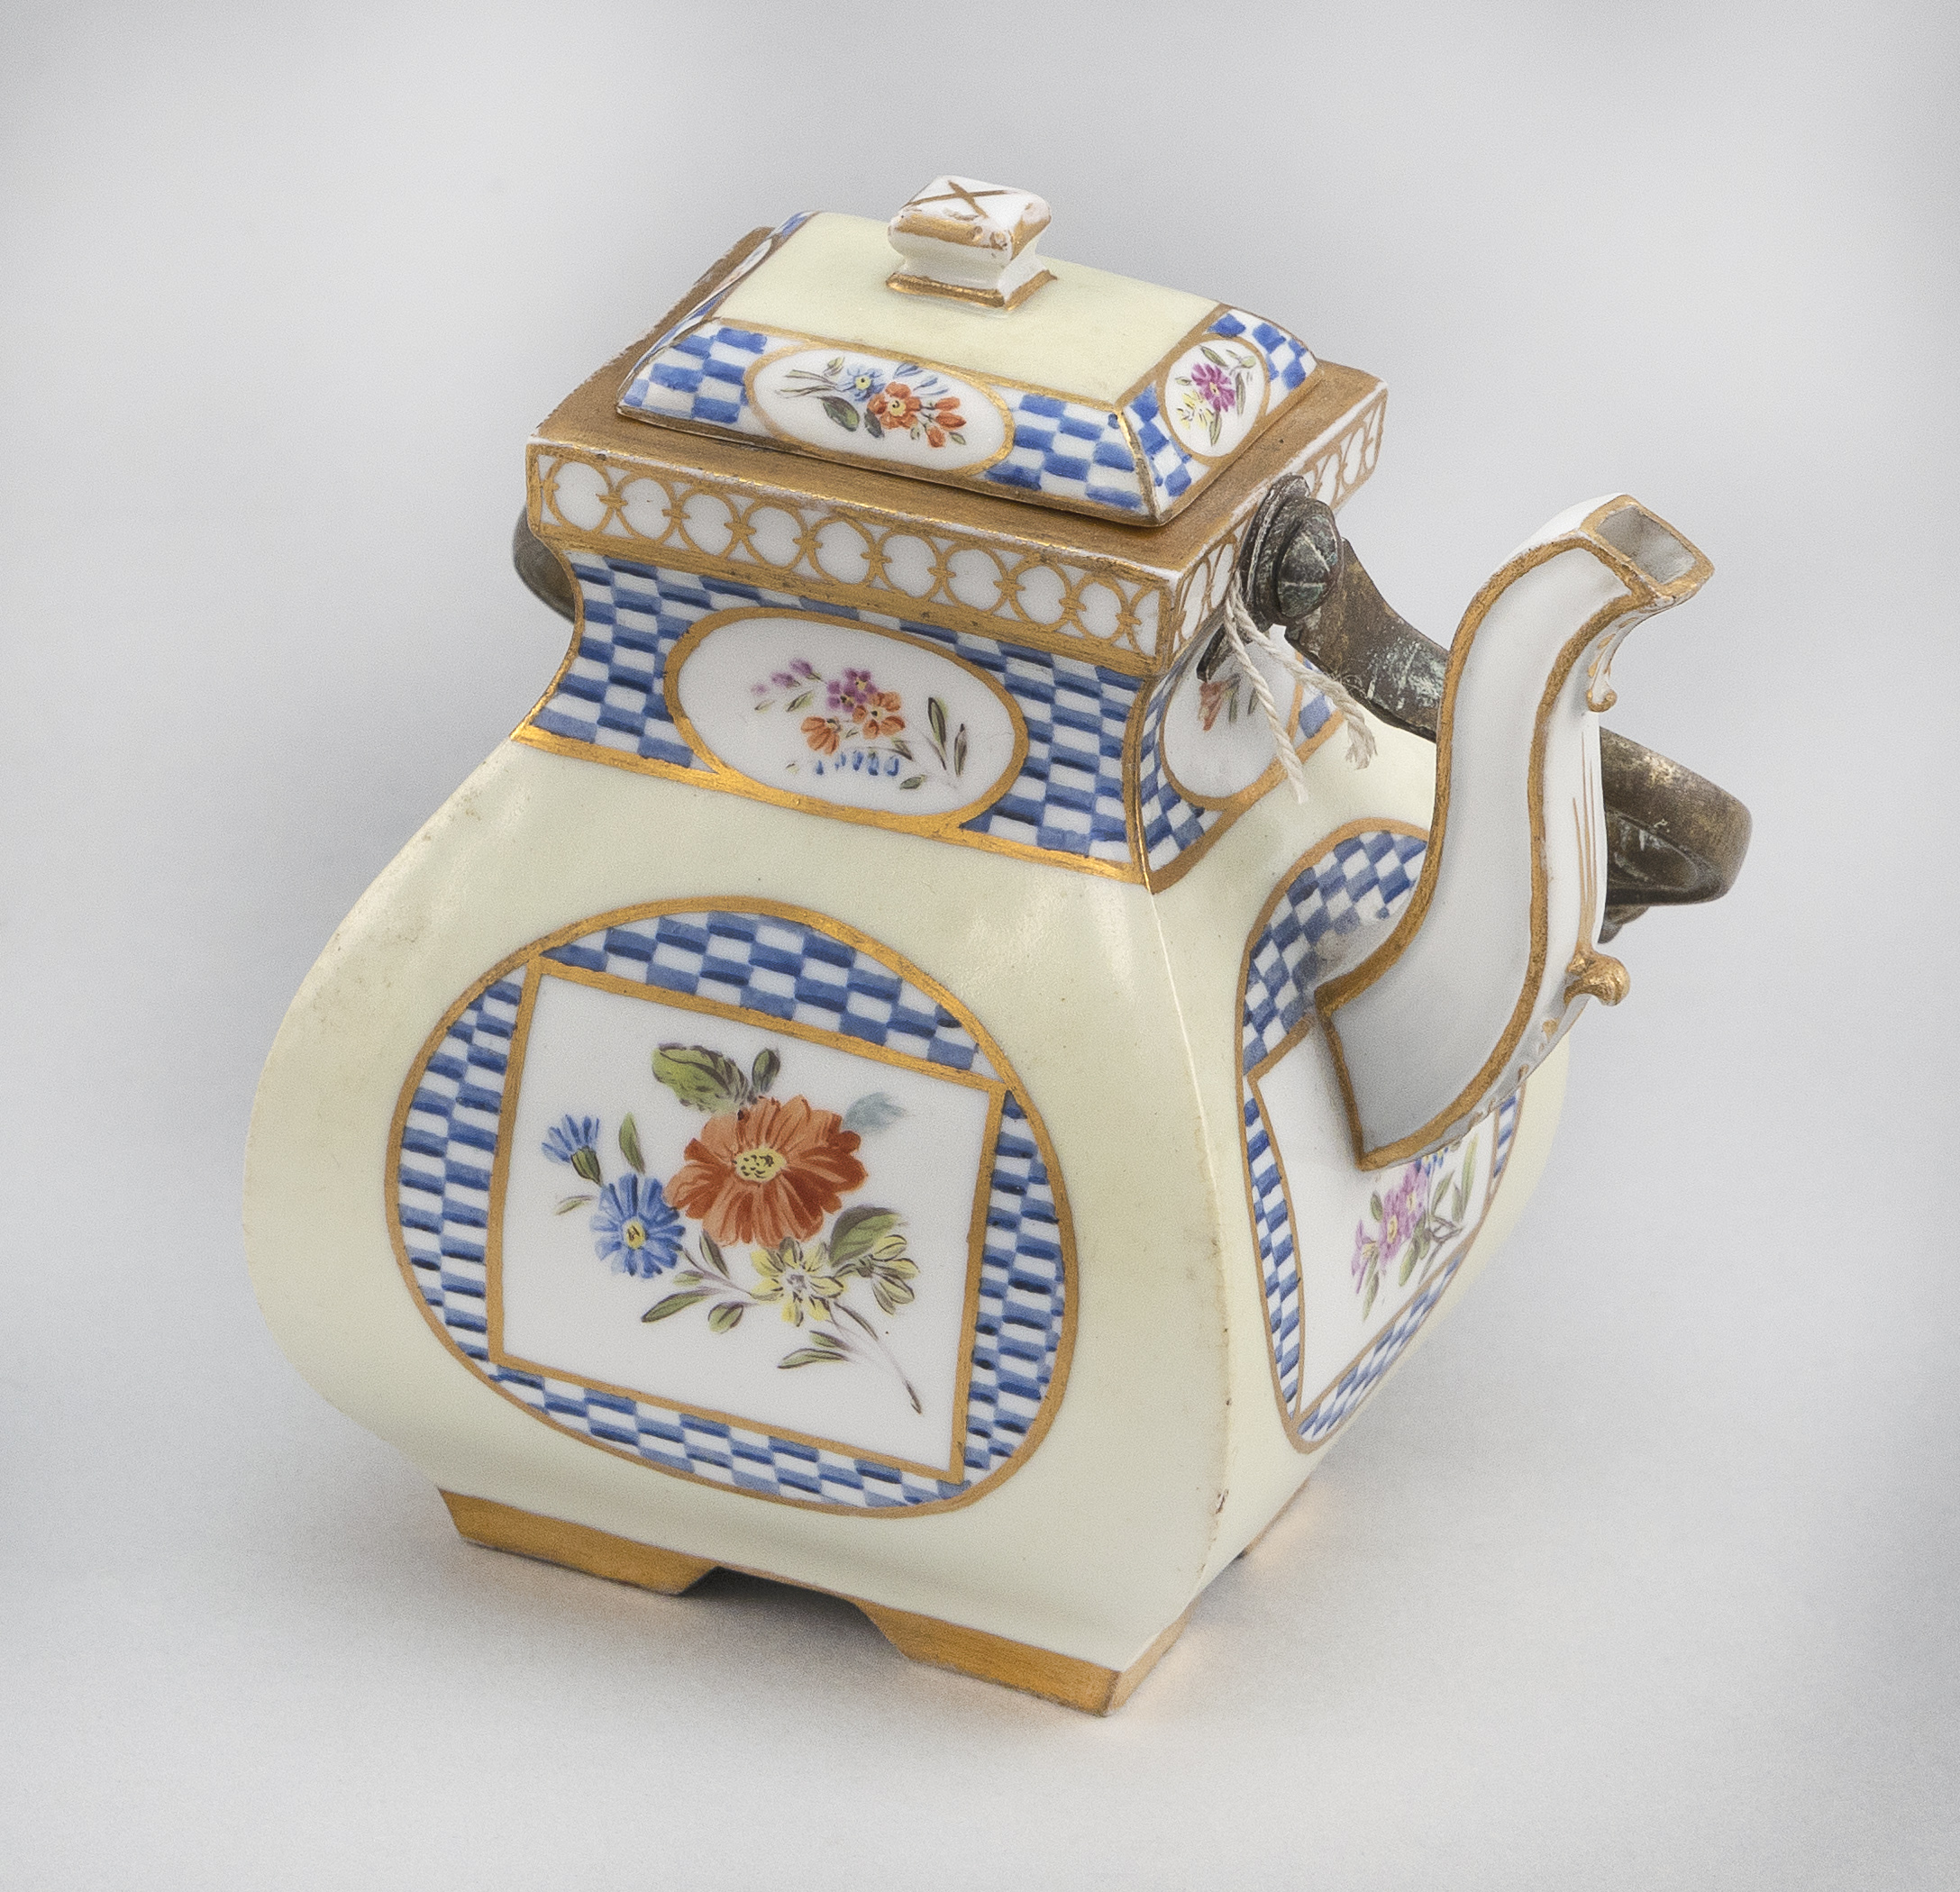 """MEISSEN MARCOLINI PERIOD PORCELAIN TEAPOT Germany, Circa 1774-1814 Height to top of cover 4.5""""."""